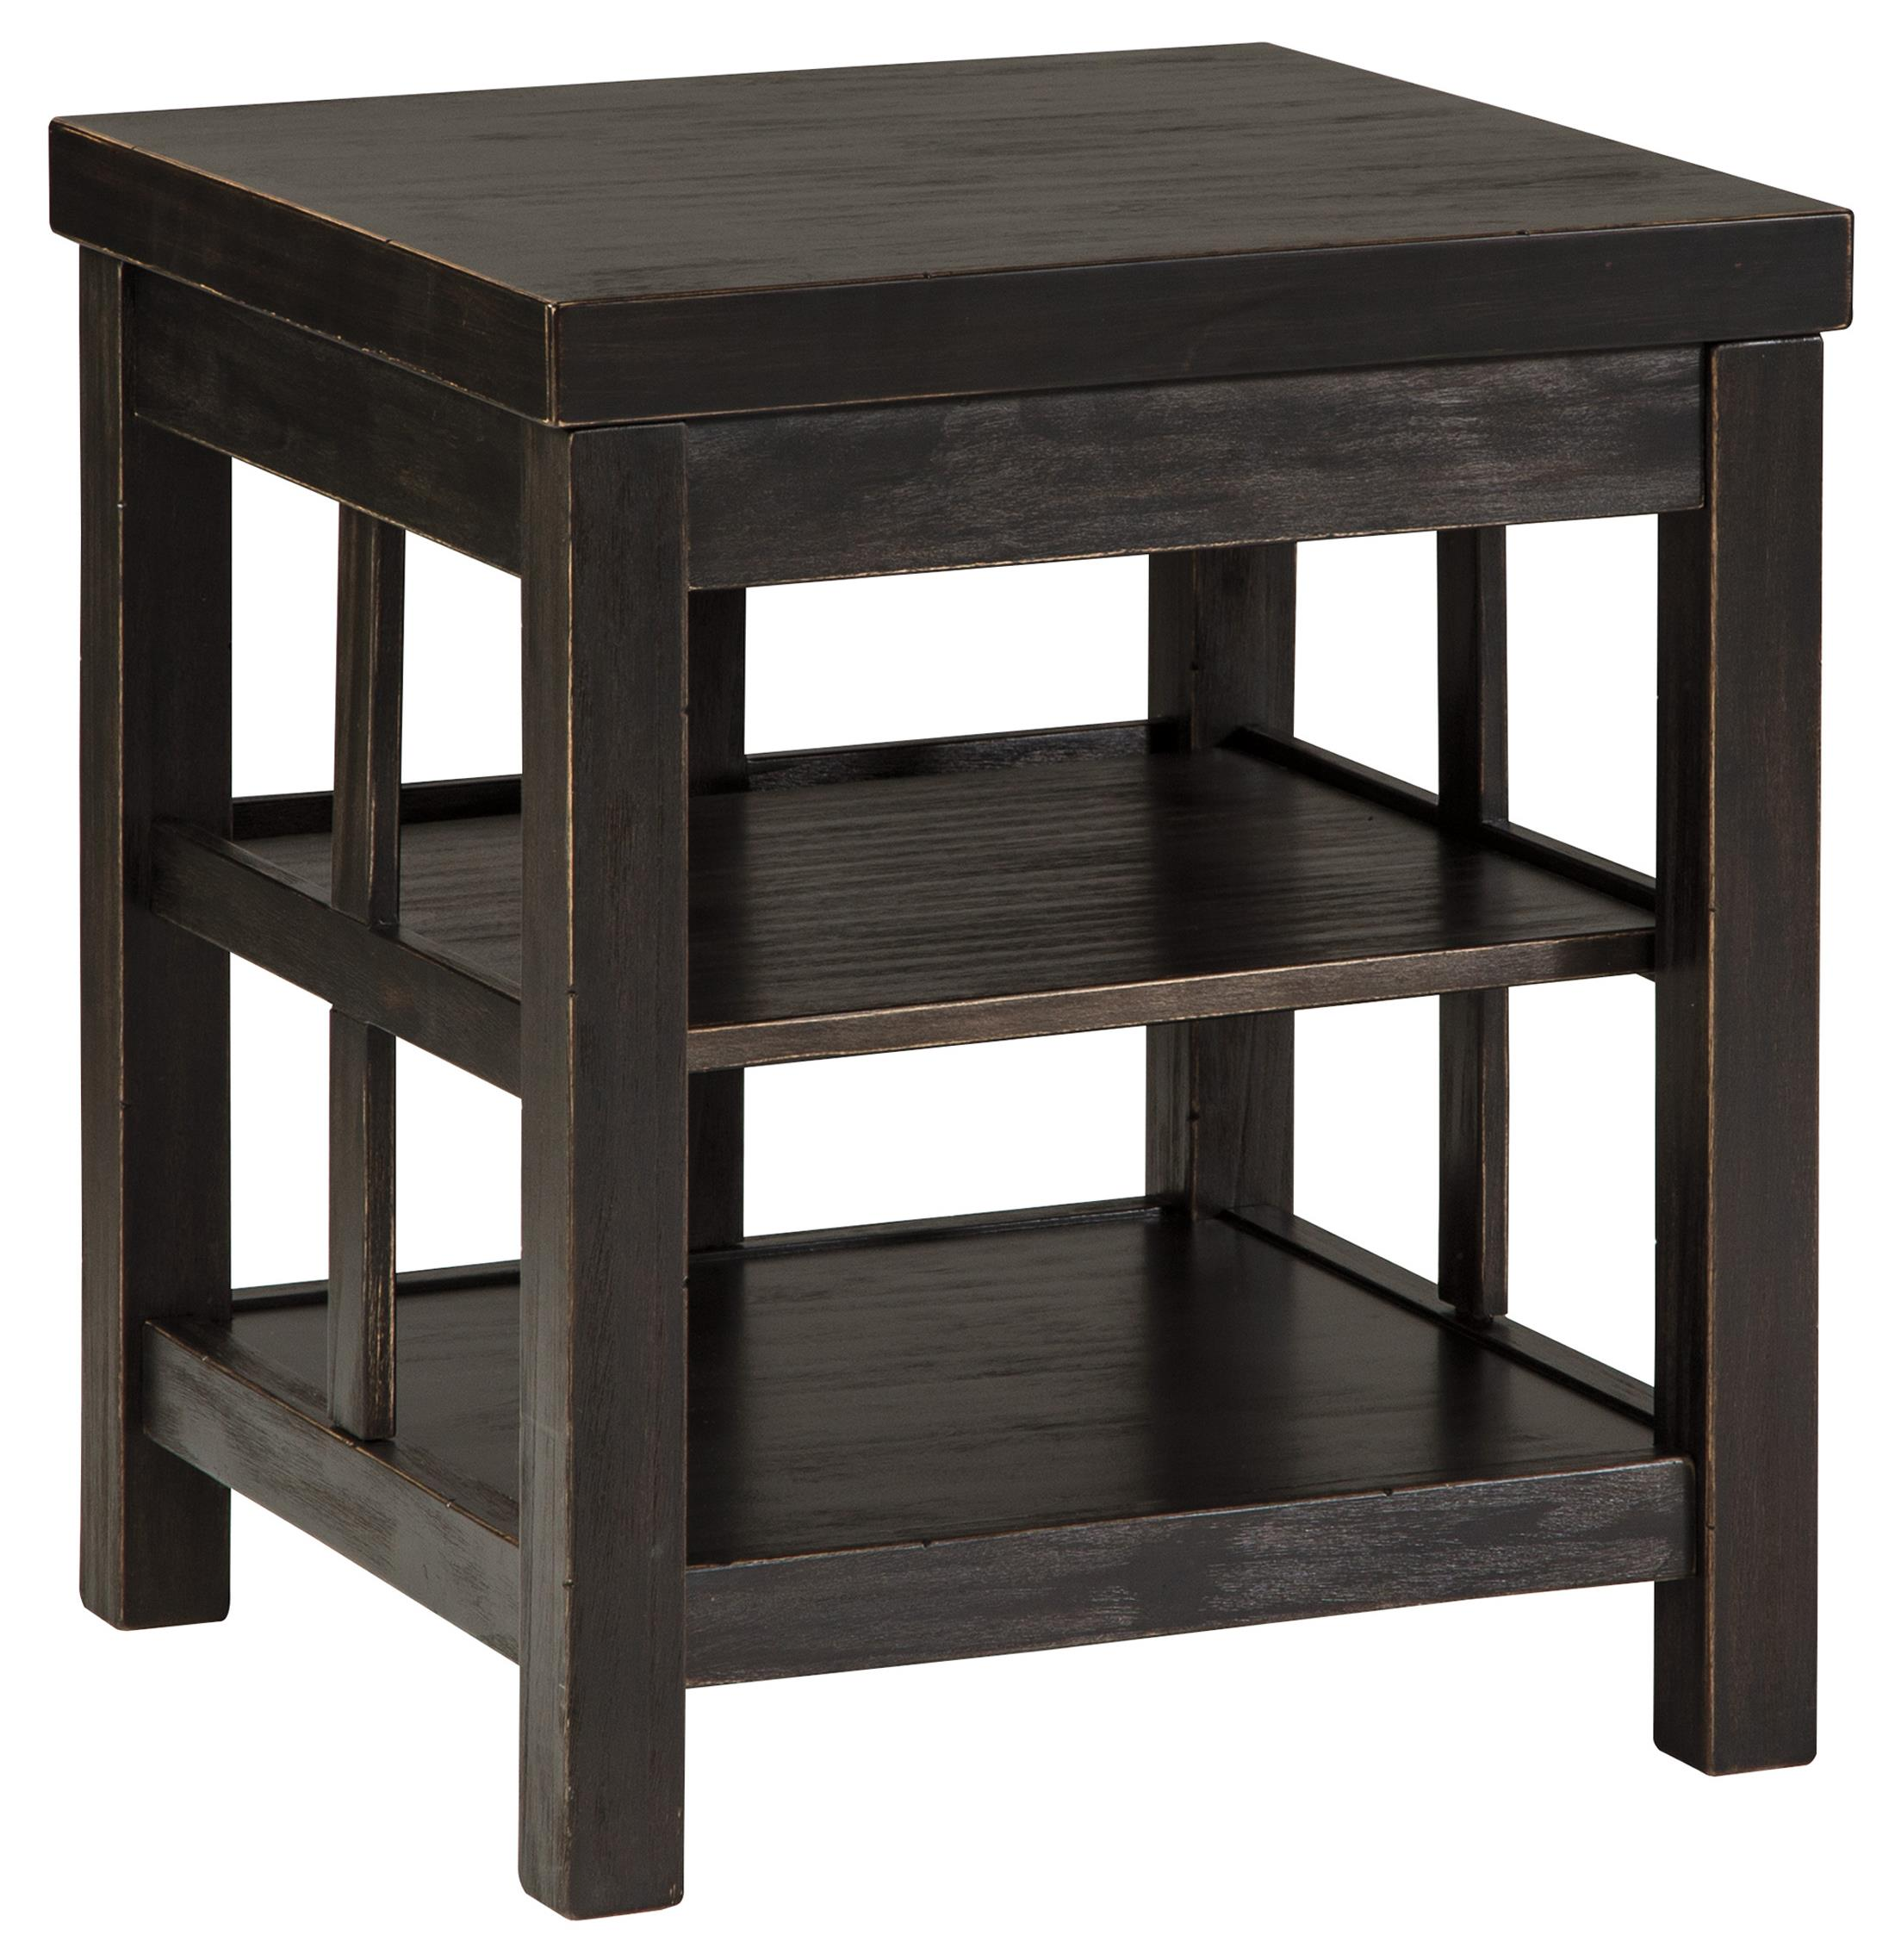 rustic distressed black square end table with shelves signature products design ashley color gavelston accent shelf tassel garland target metal pin legs ethan allen tables used